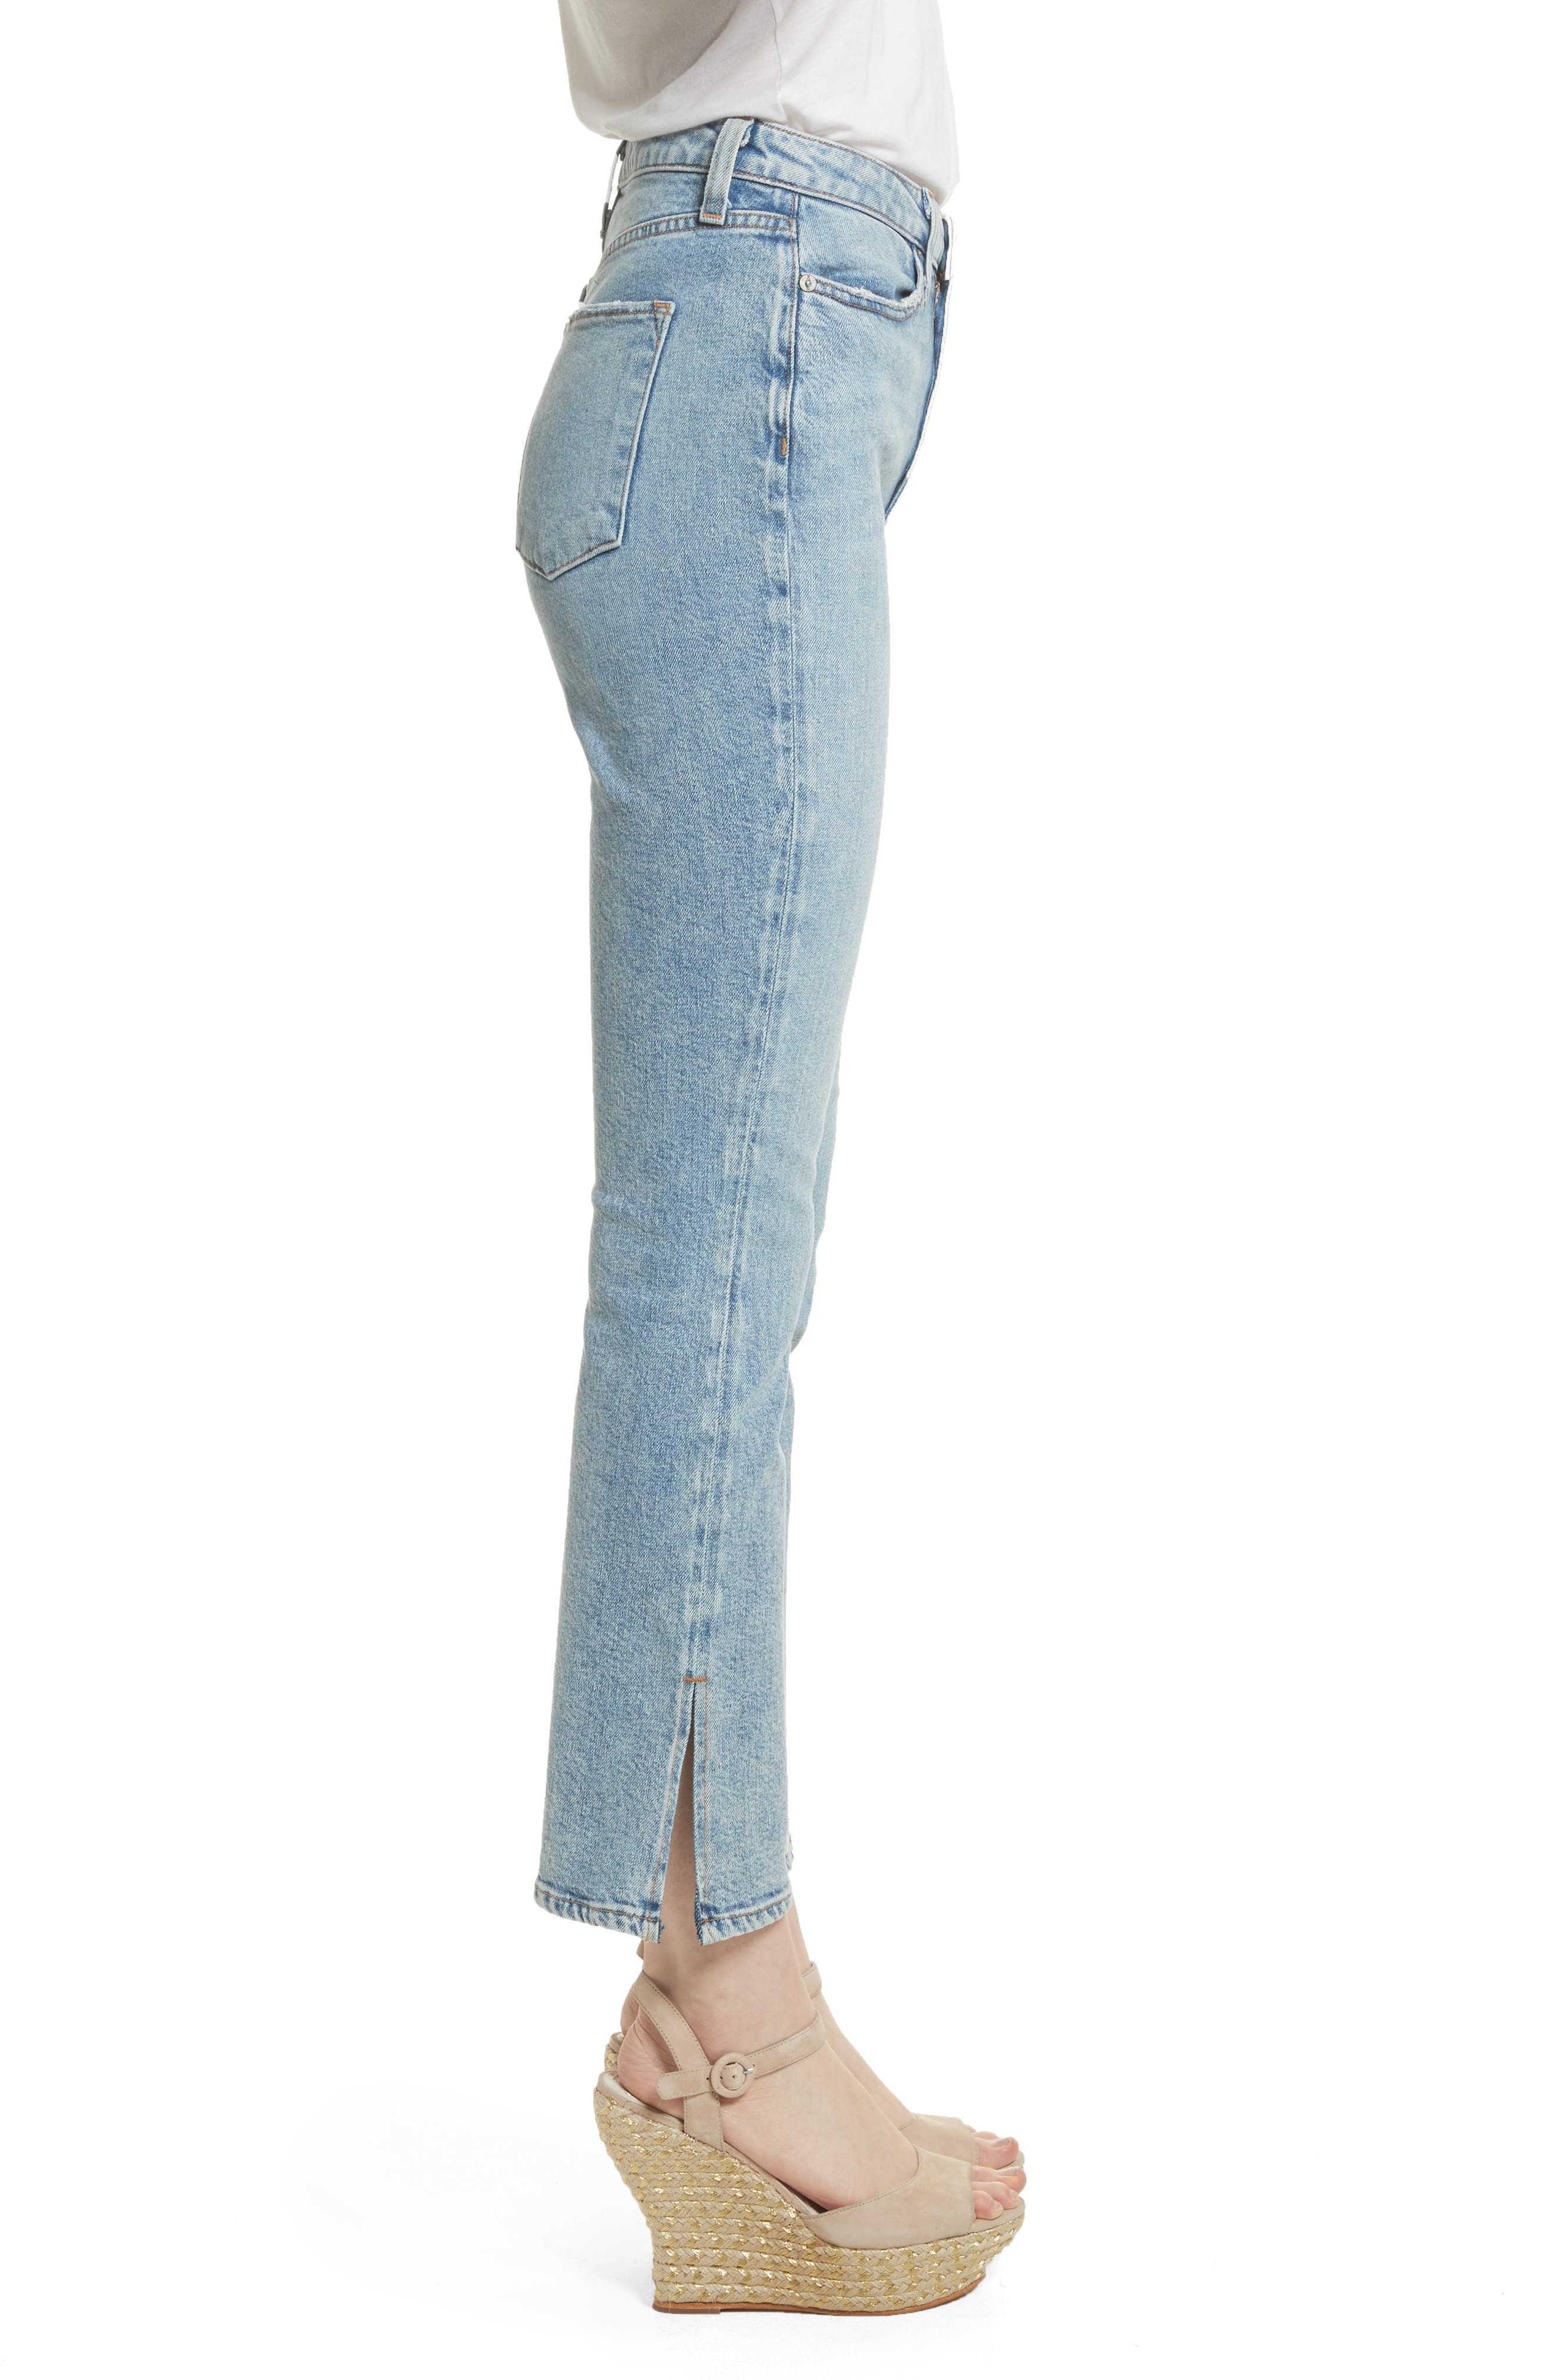 AO.LA Fabulous High Waist Baby Bootcut Jeans,                             Alternate thumbnail 3, color,                             479